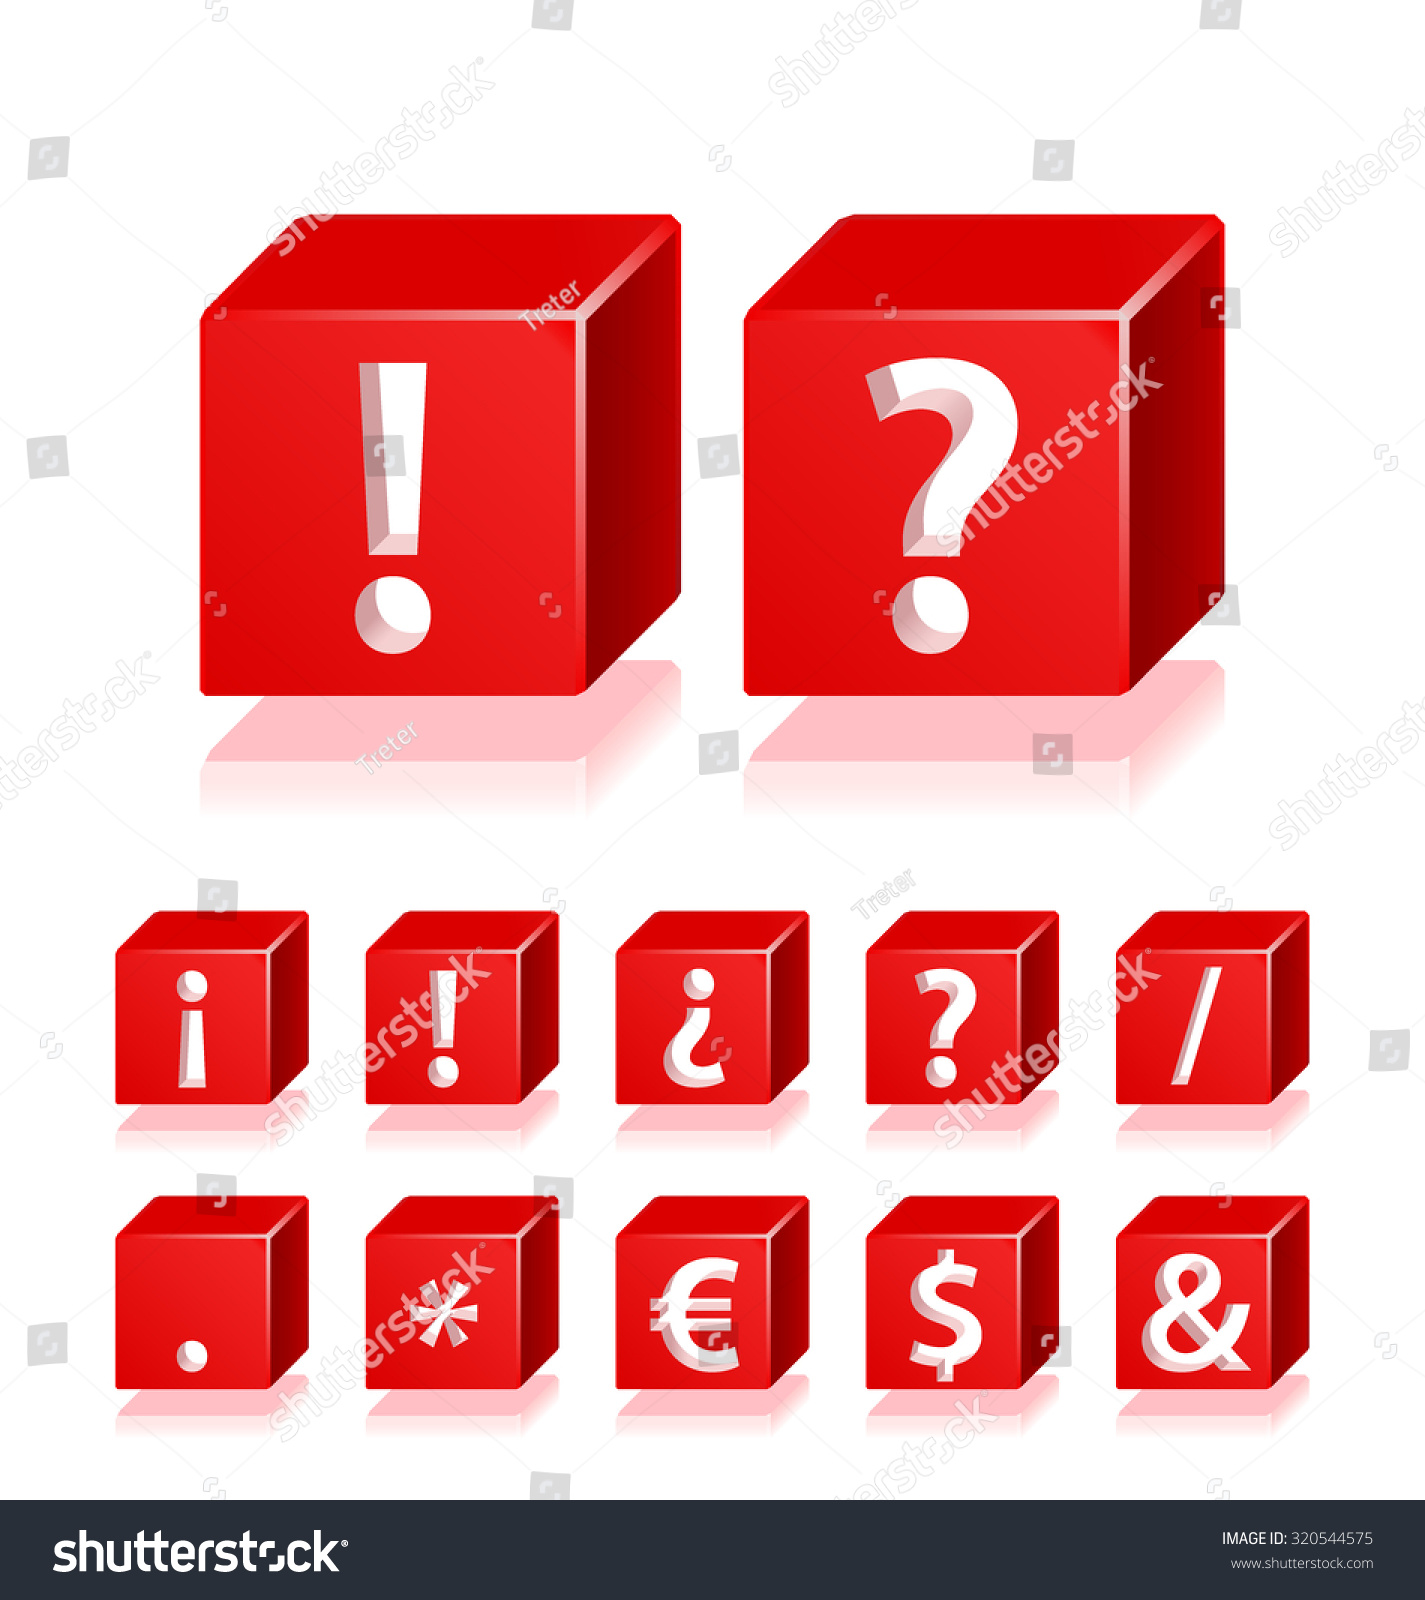 High Quality 3 D Red Cube Symbols Stock Vector Royalty Free